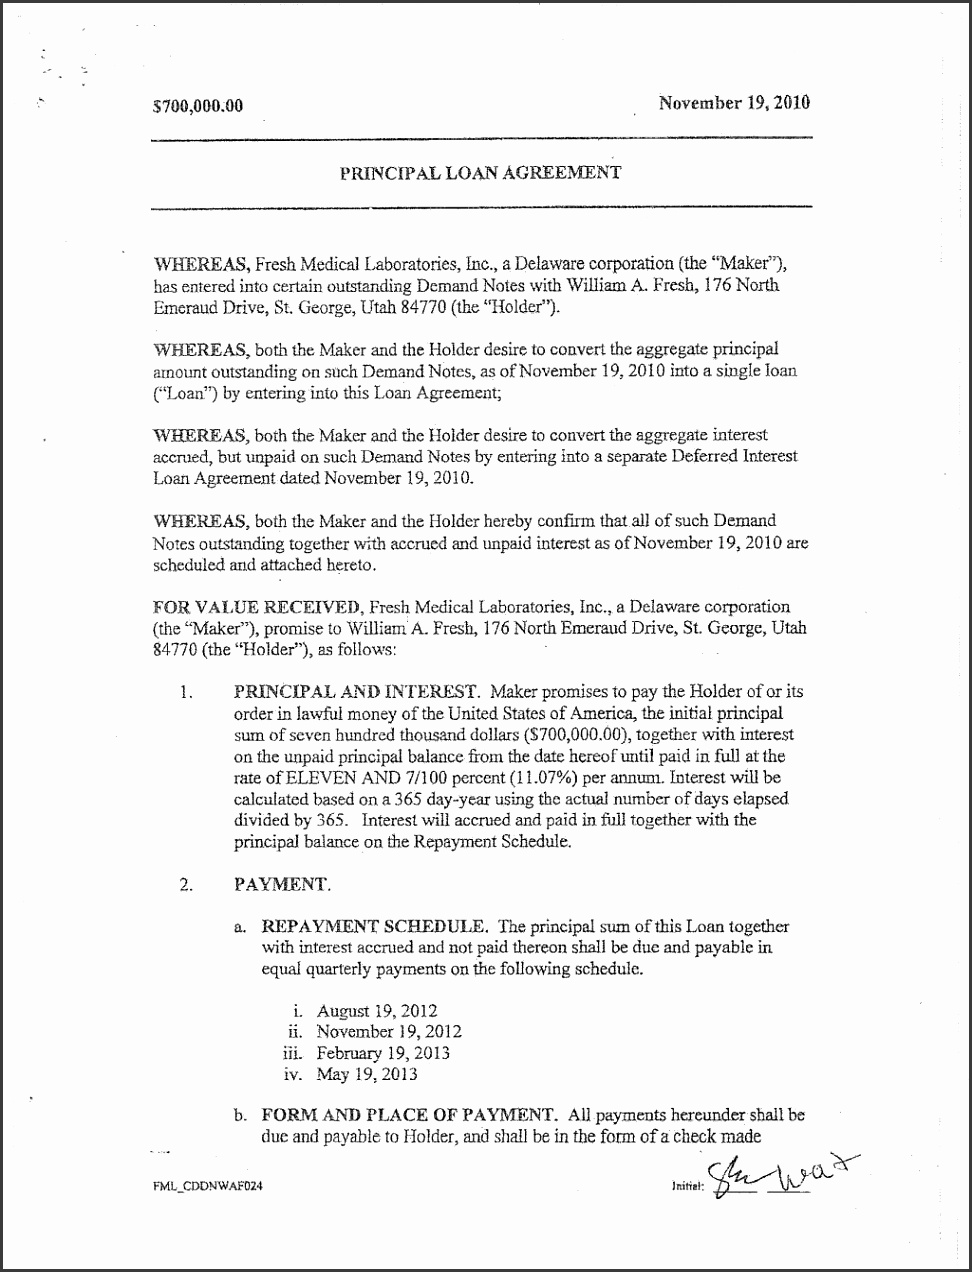 Loanayment Agreement Letter Sample Between Friends Contract Terms mercial With Schedule Loan Payment Automatic Form 1024